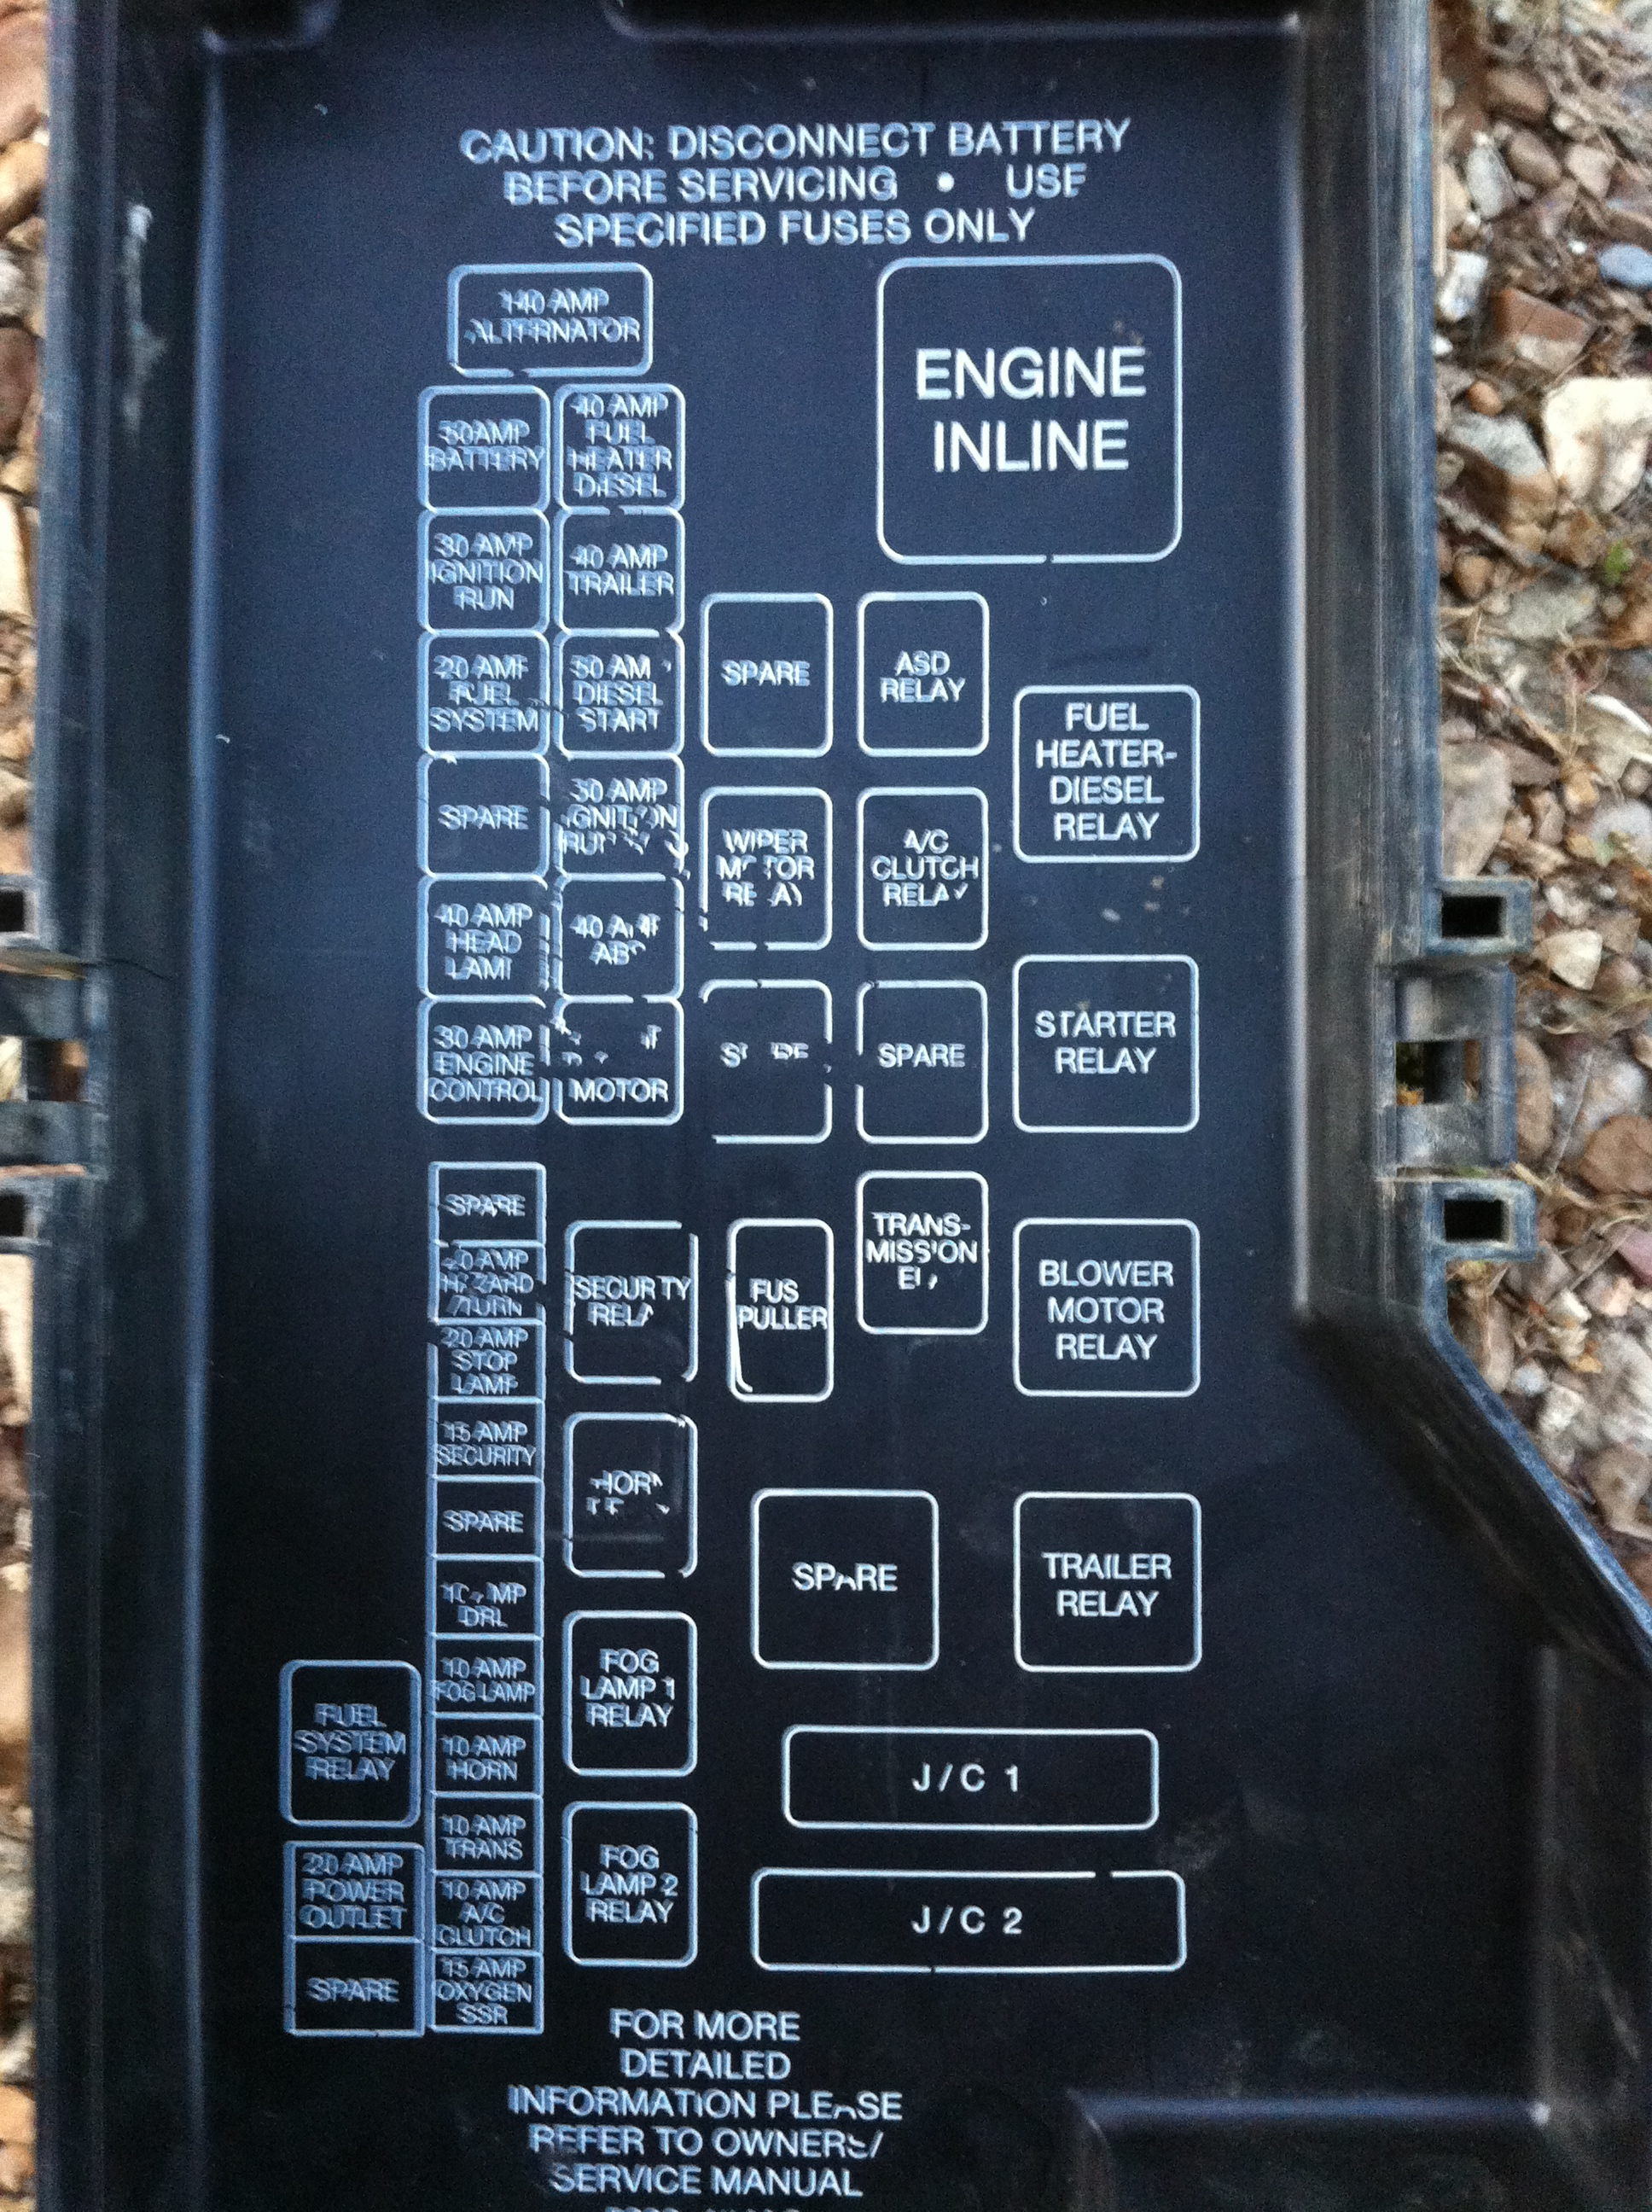 Dodge Durango Fuse Diagram Further 2005 Dodge Magnum Fuse Box Diagram